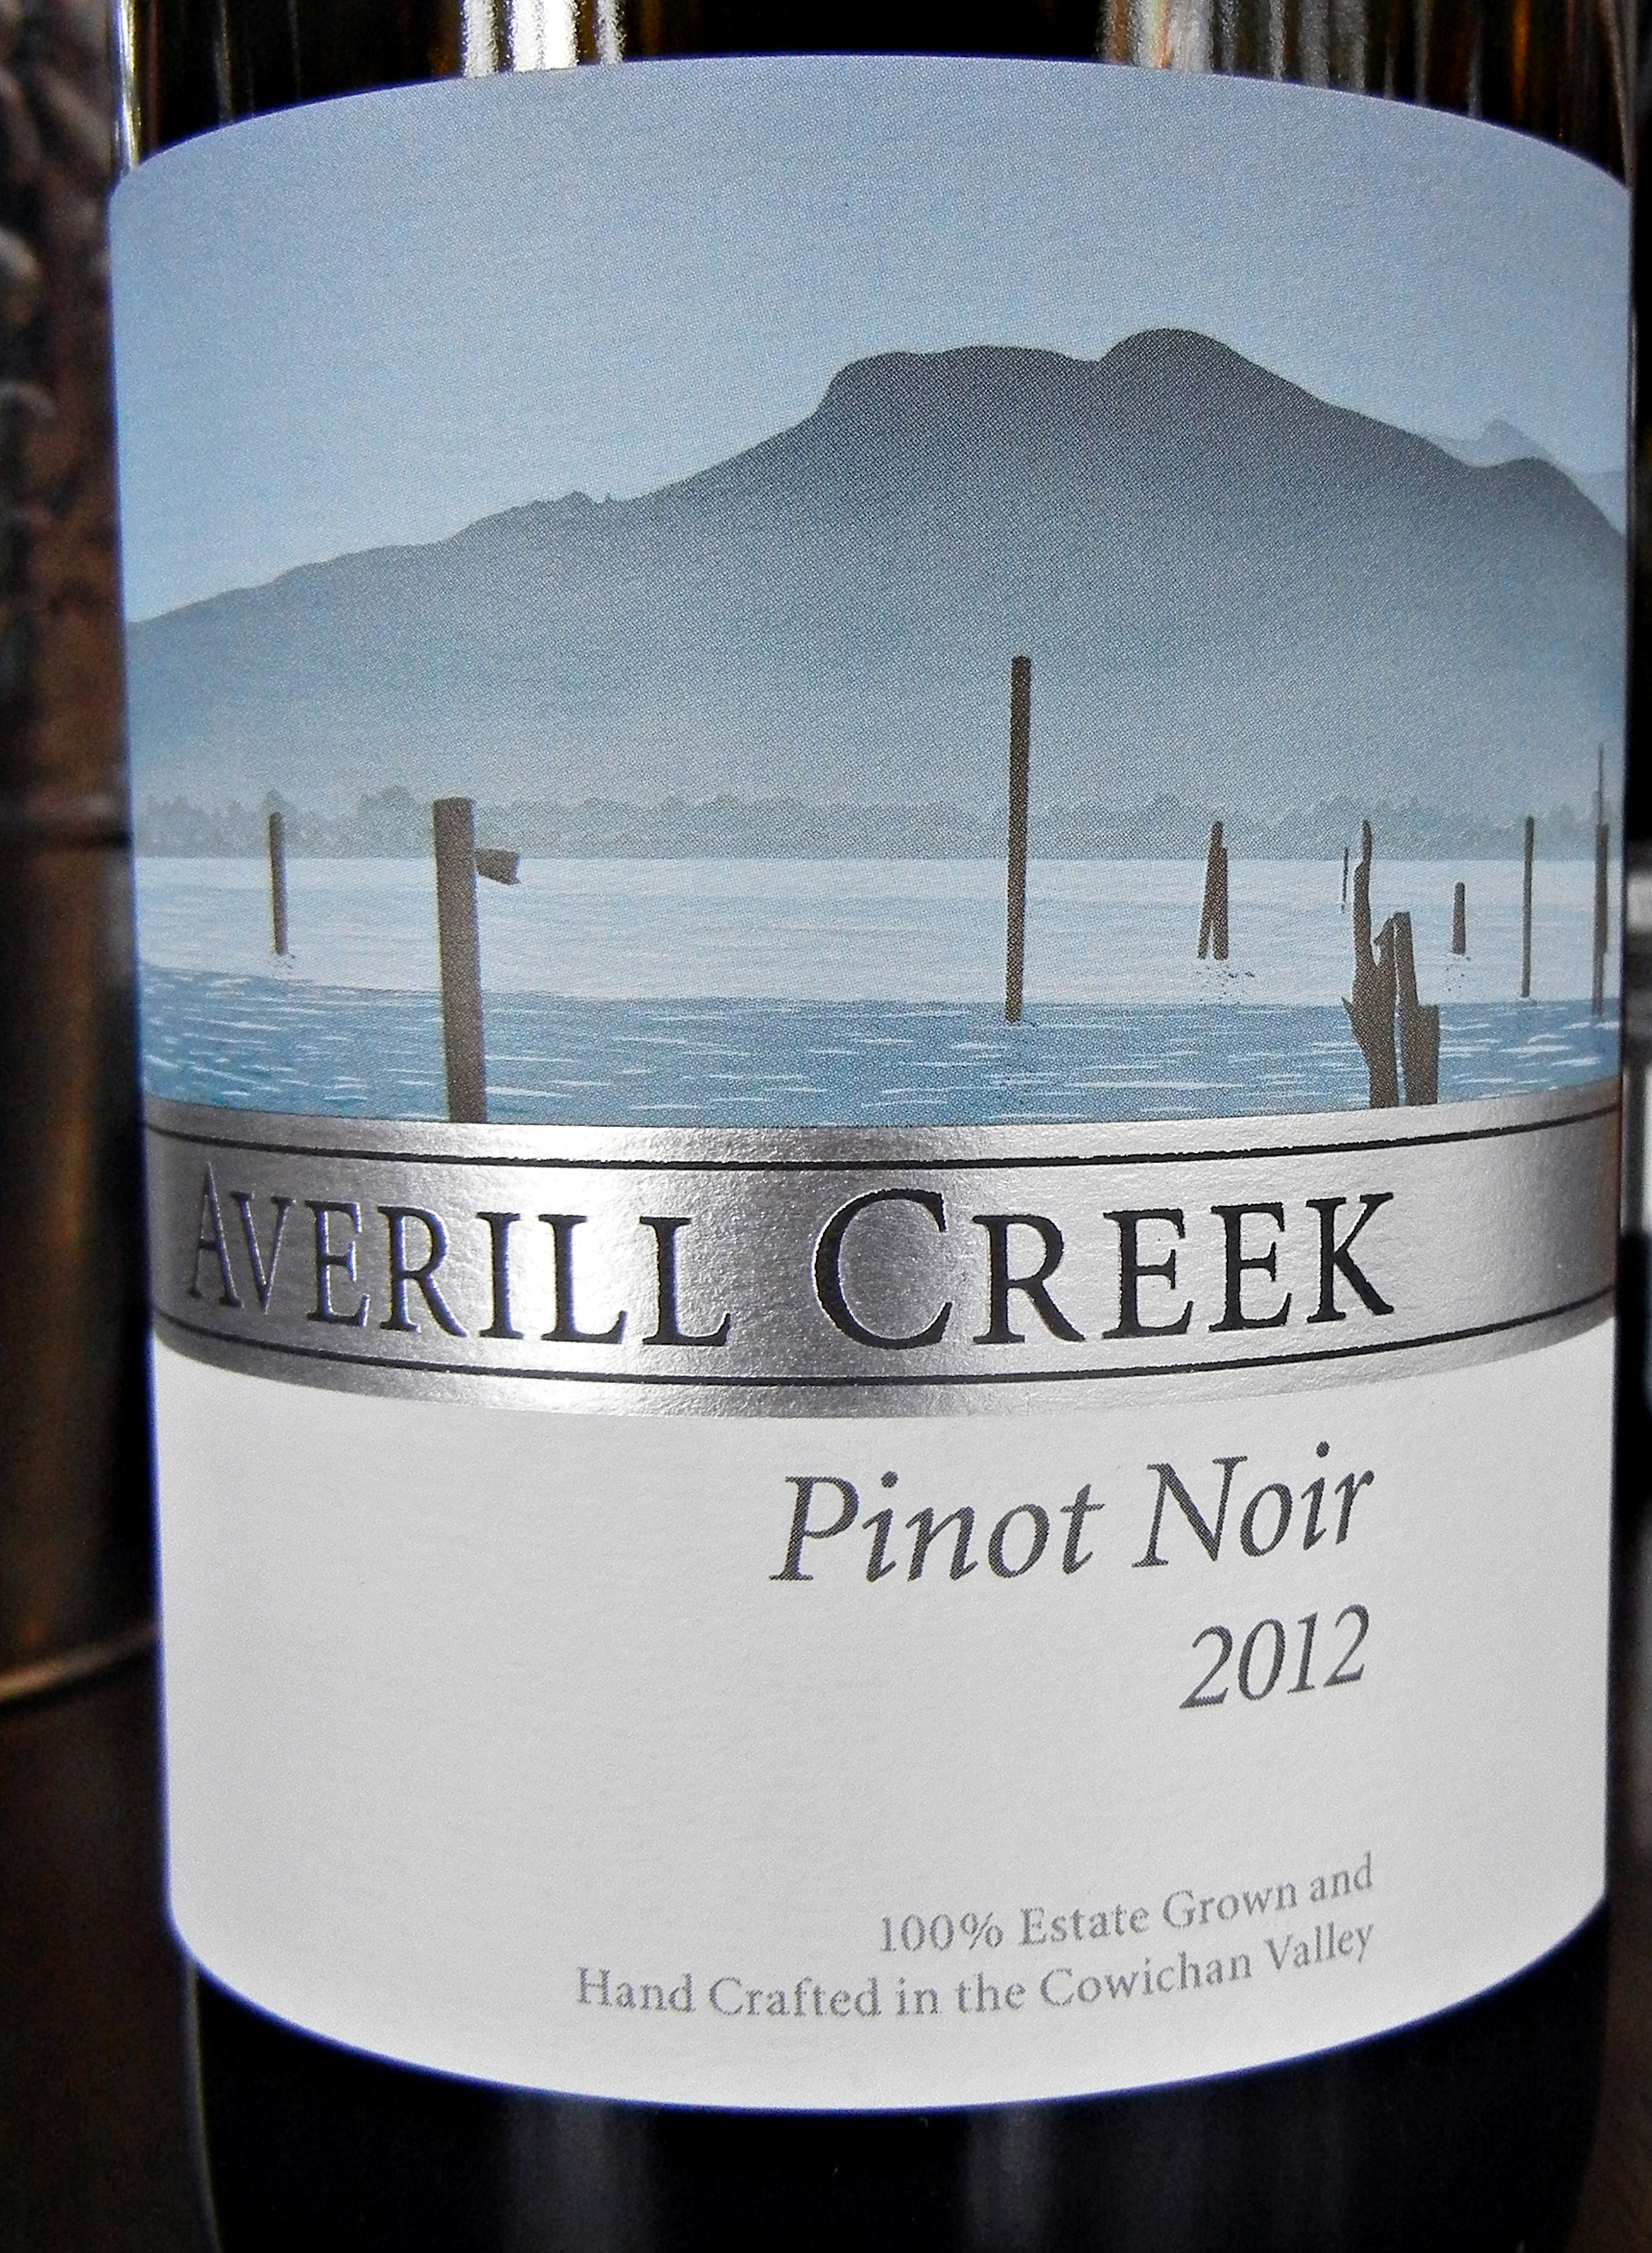 Averill Creek Pinot Noir 2012 Label - BC Pinot Noir Tasting Review 24